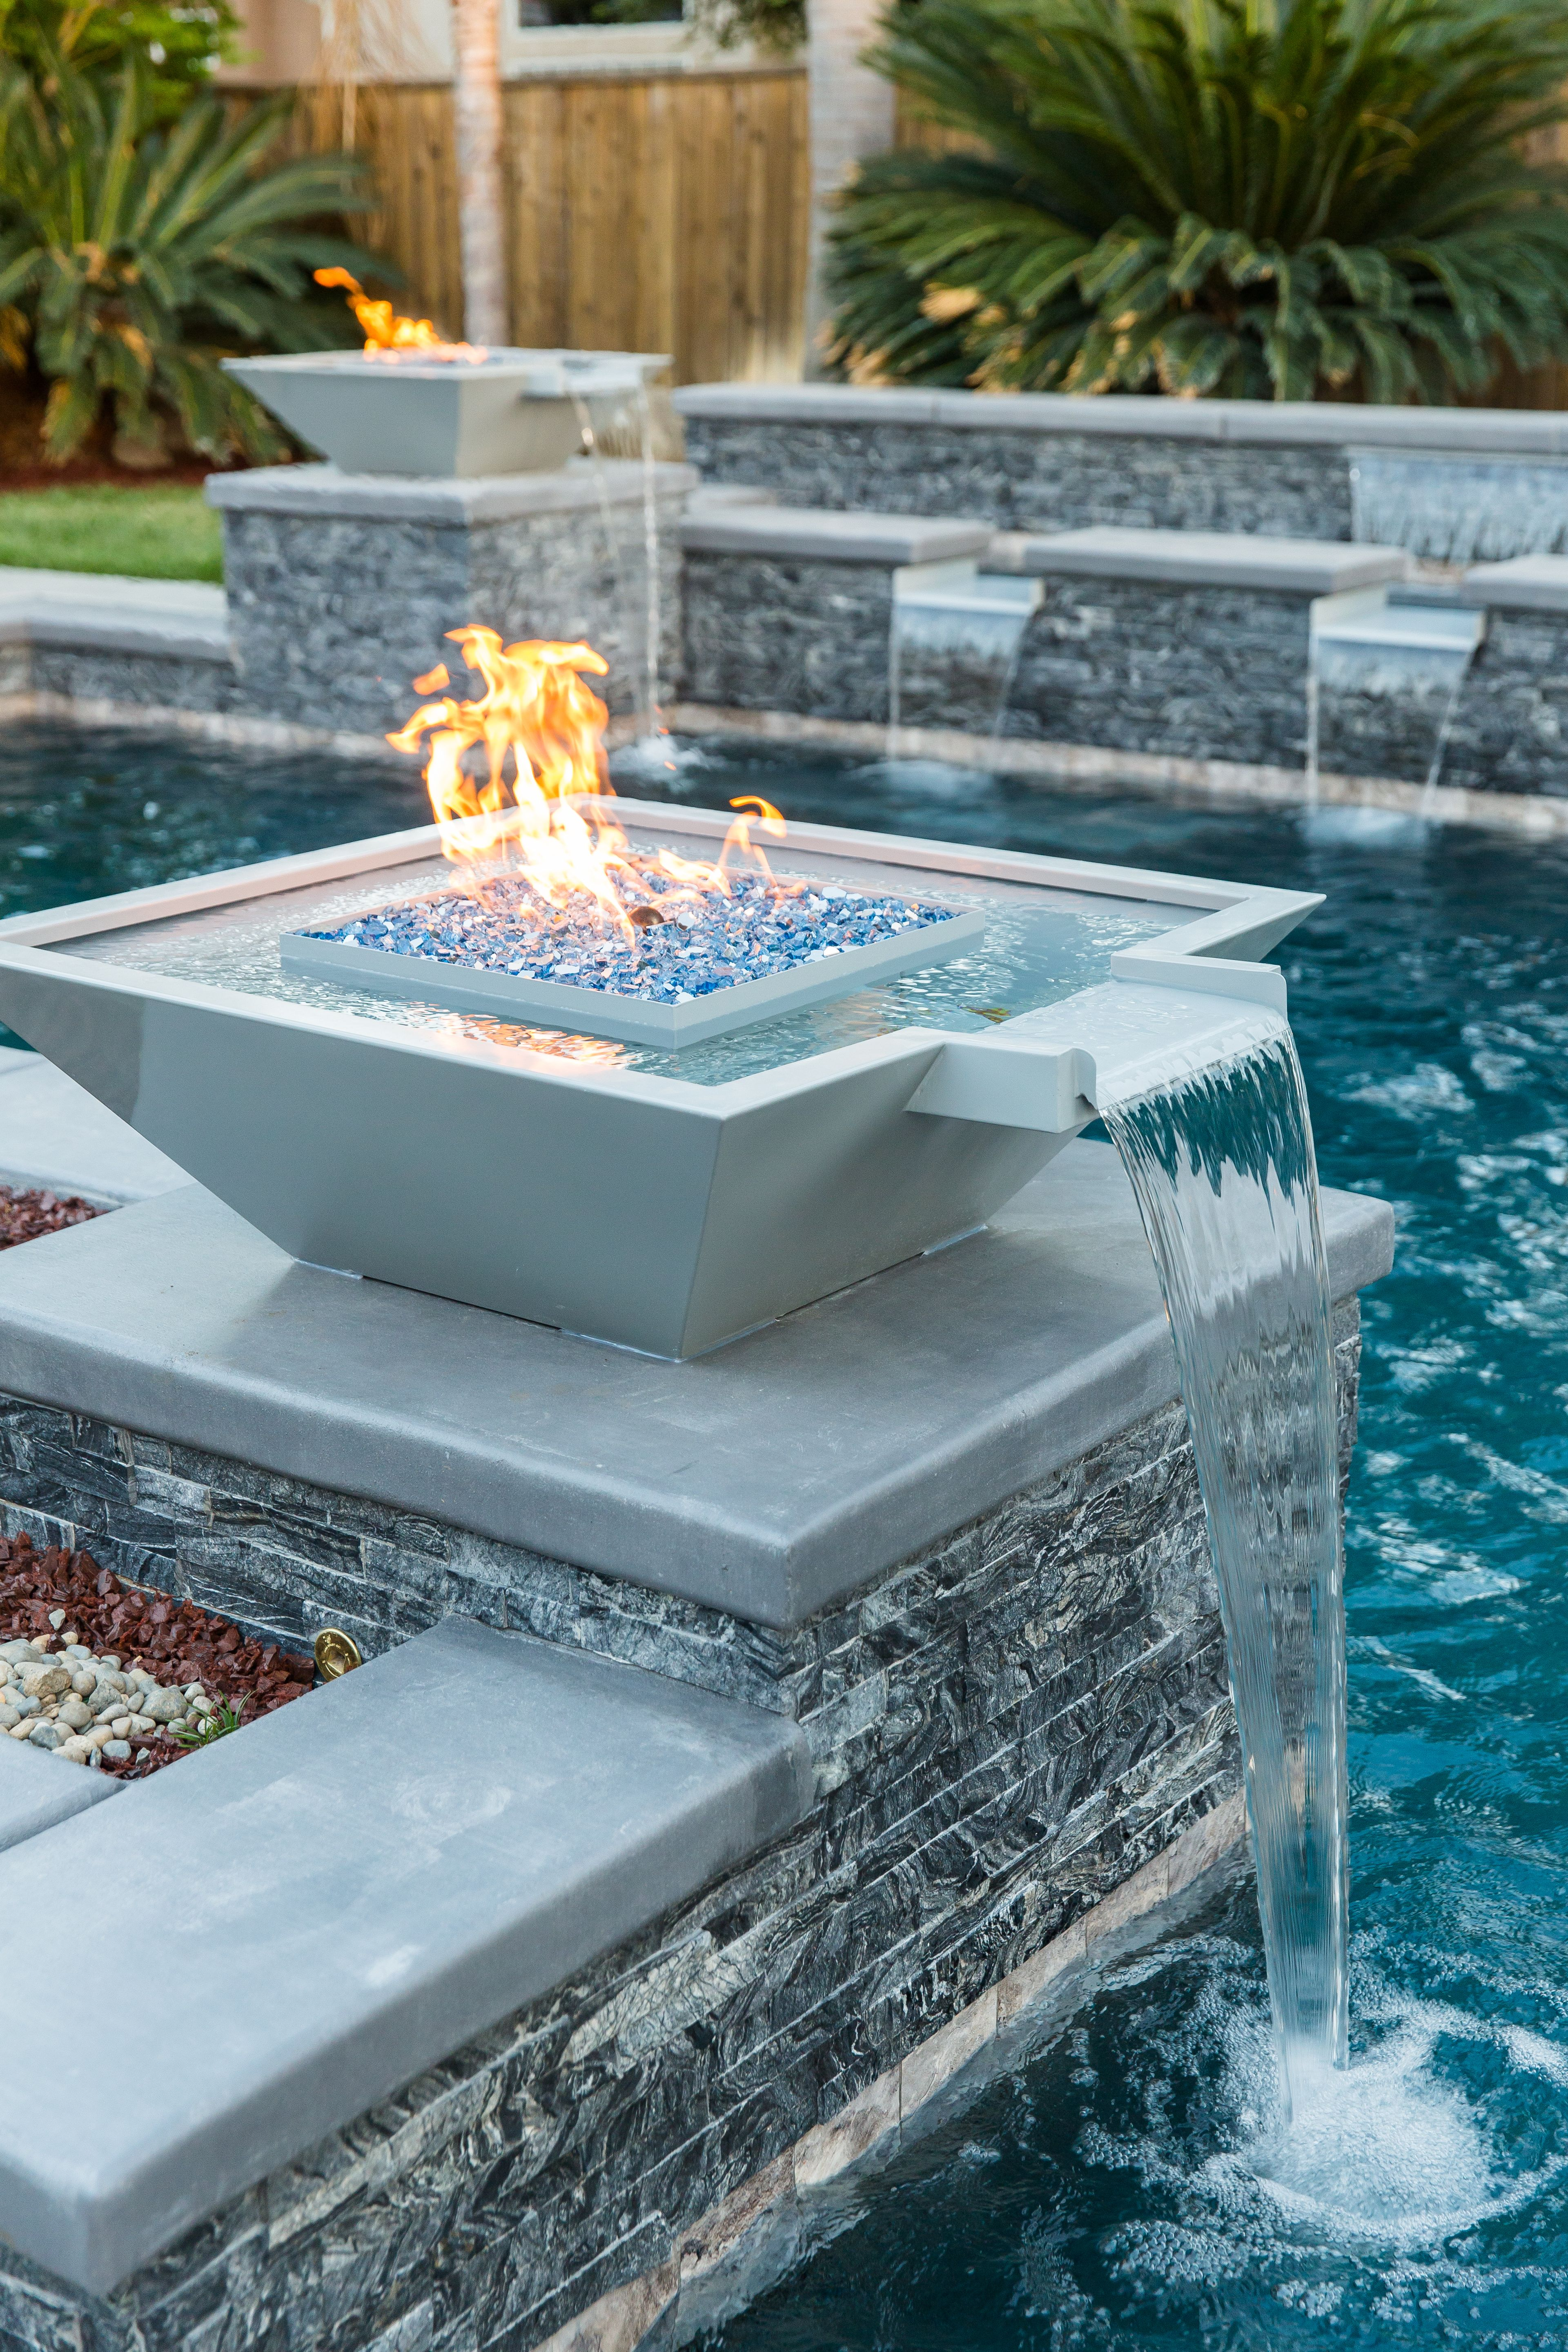 Pin On Outdoors And Pool Ideas